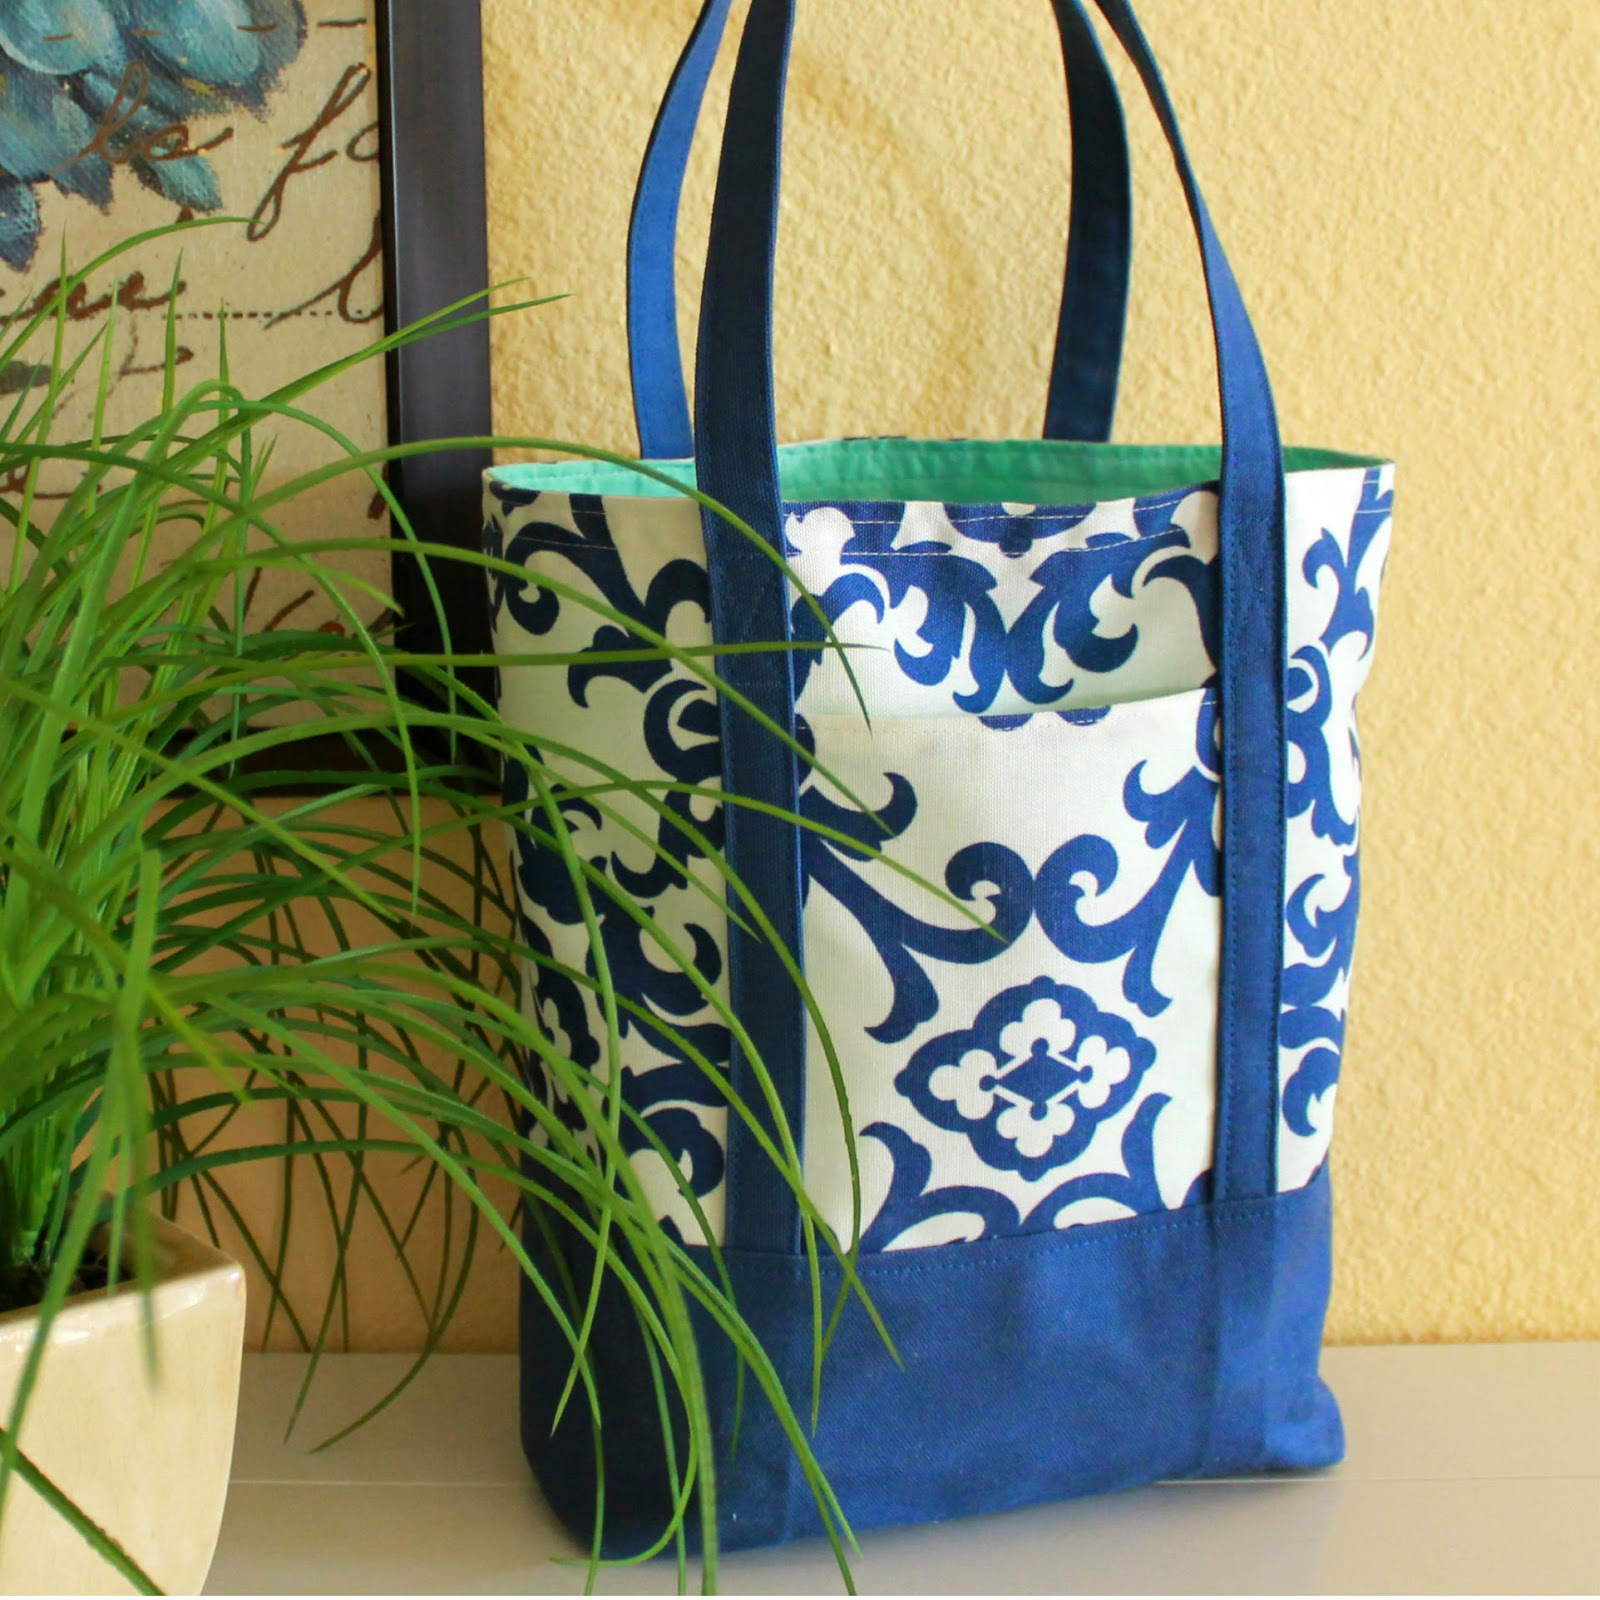 A blue and white canvas tote by a plant